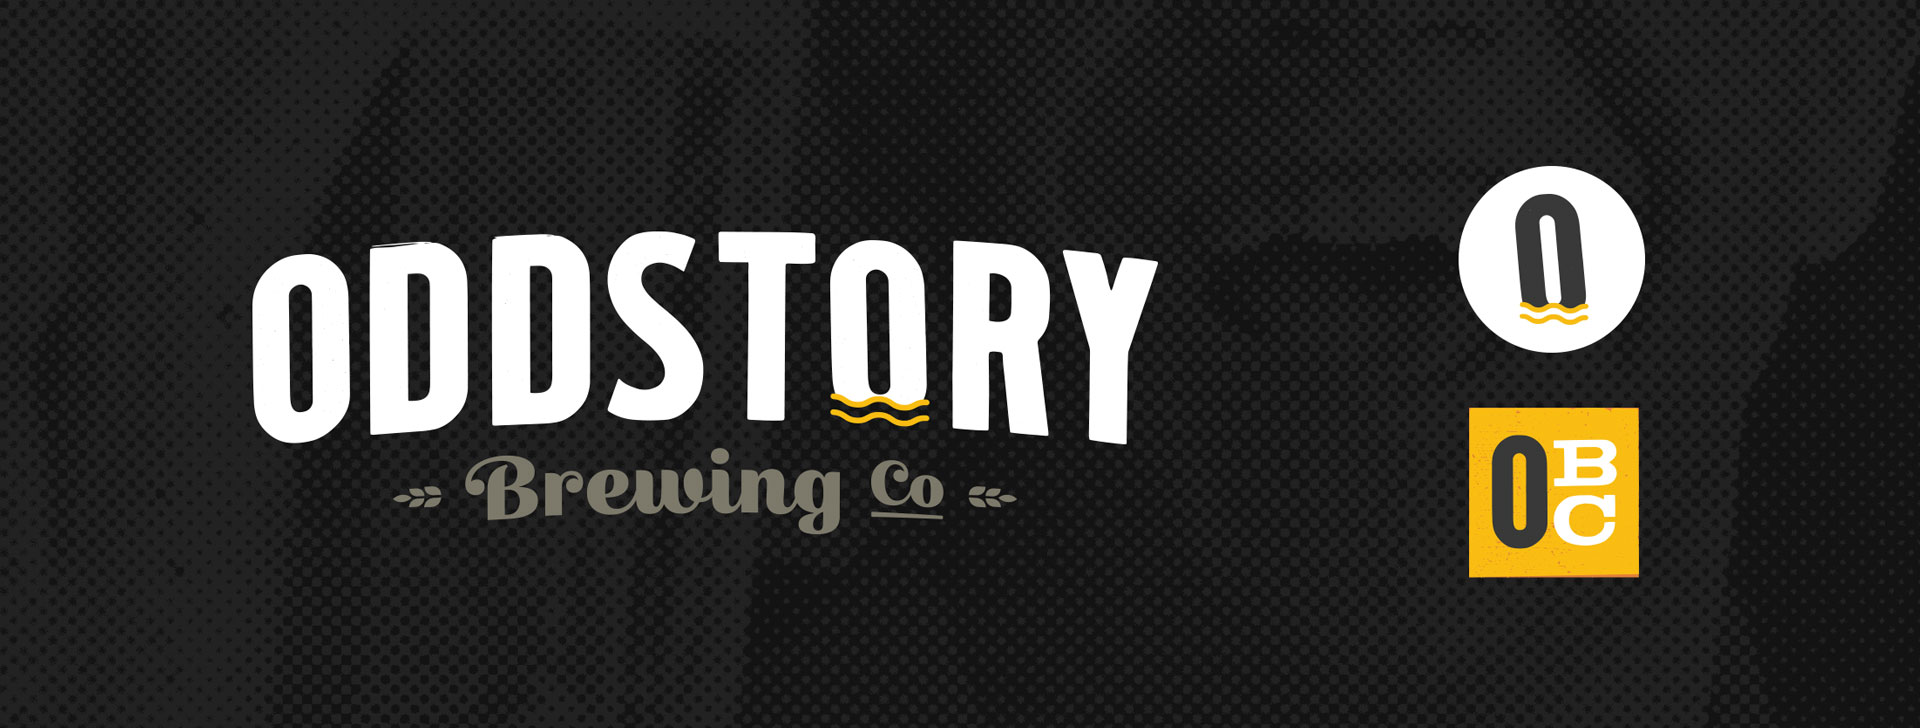 OddStory Brewing Co. - Identity, Logos, Social Media Icons